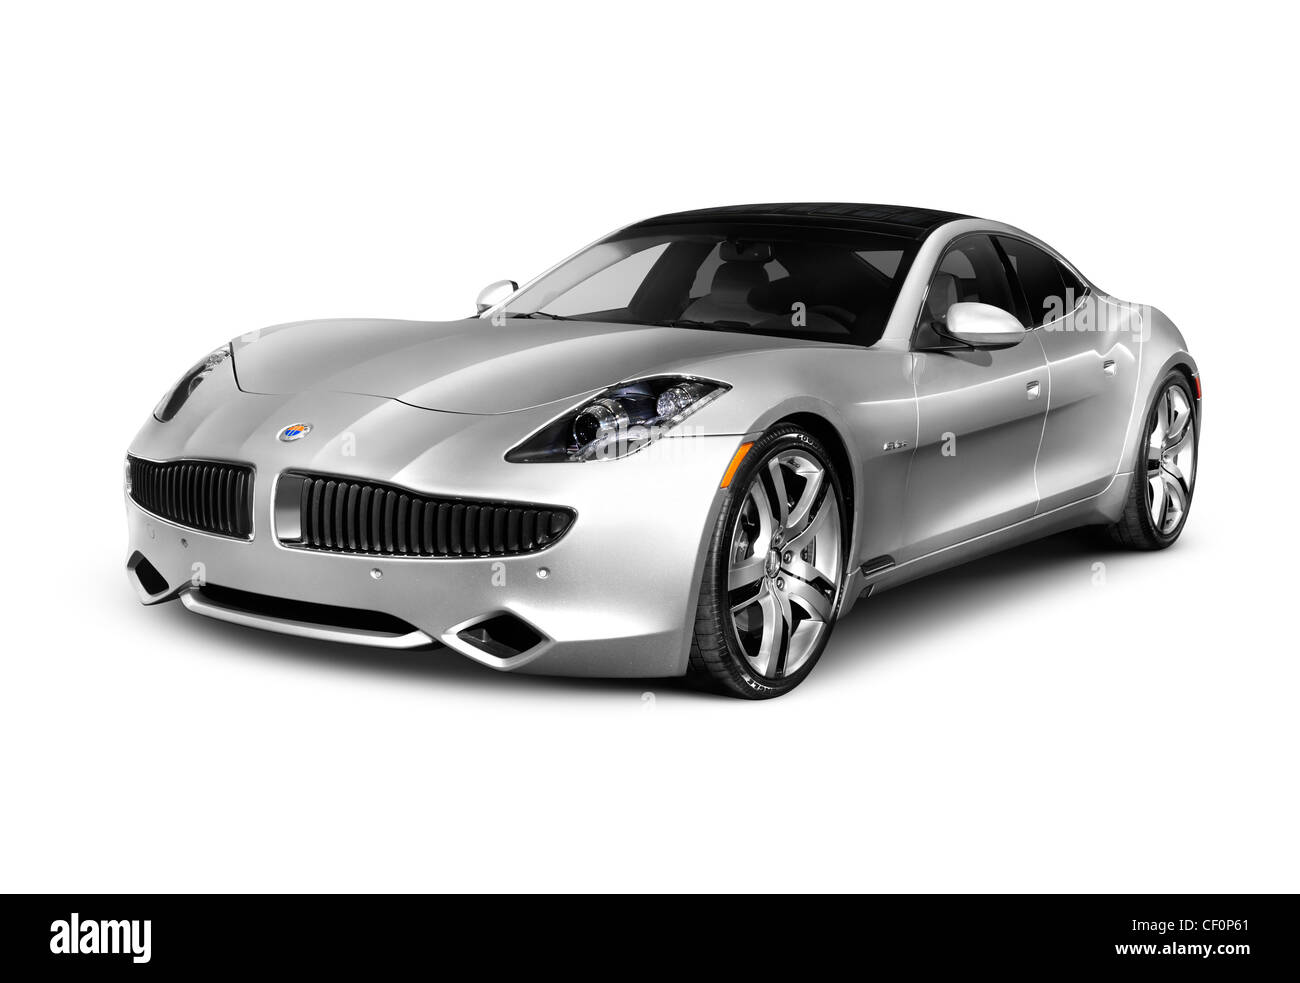 2012 Fisker Karma plug-in hybrid sedan electric luxury car. Isolated on white background with clipping path. - Stock Image